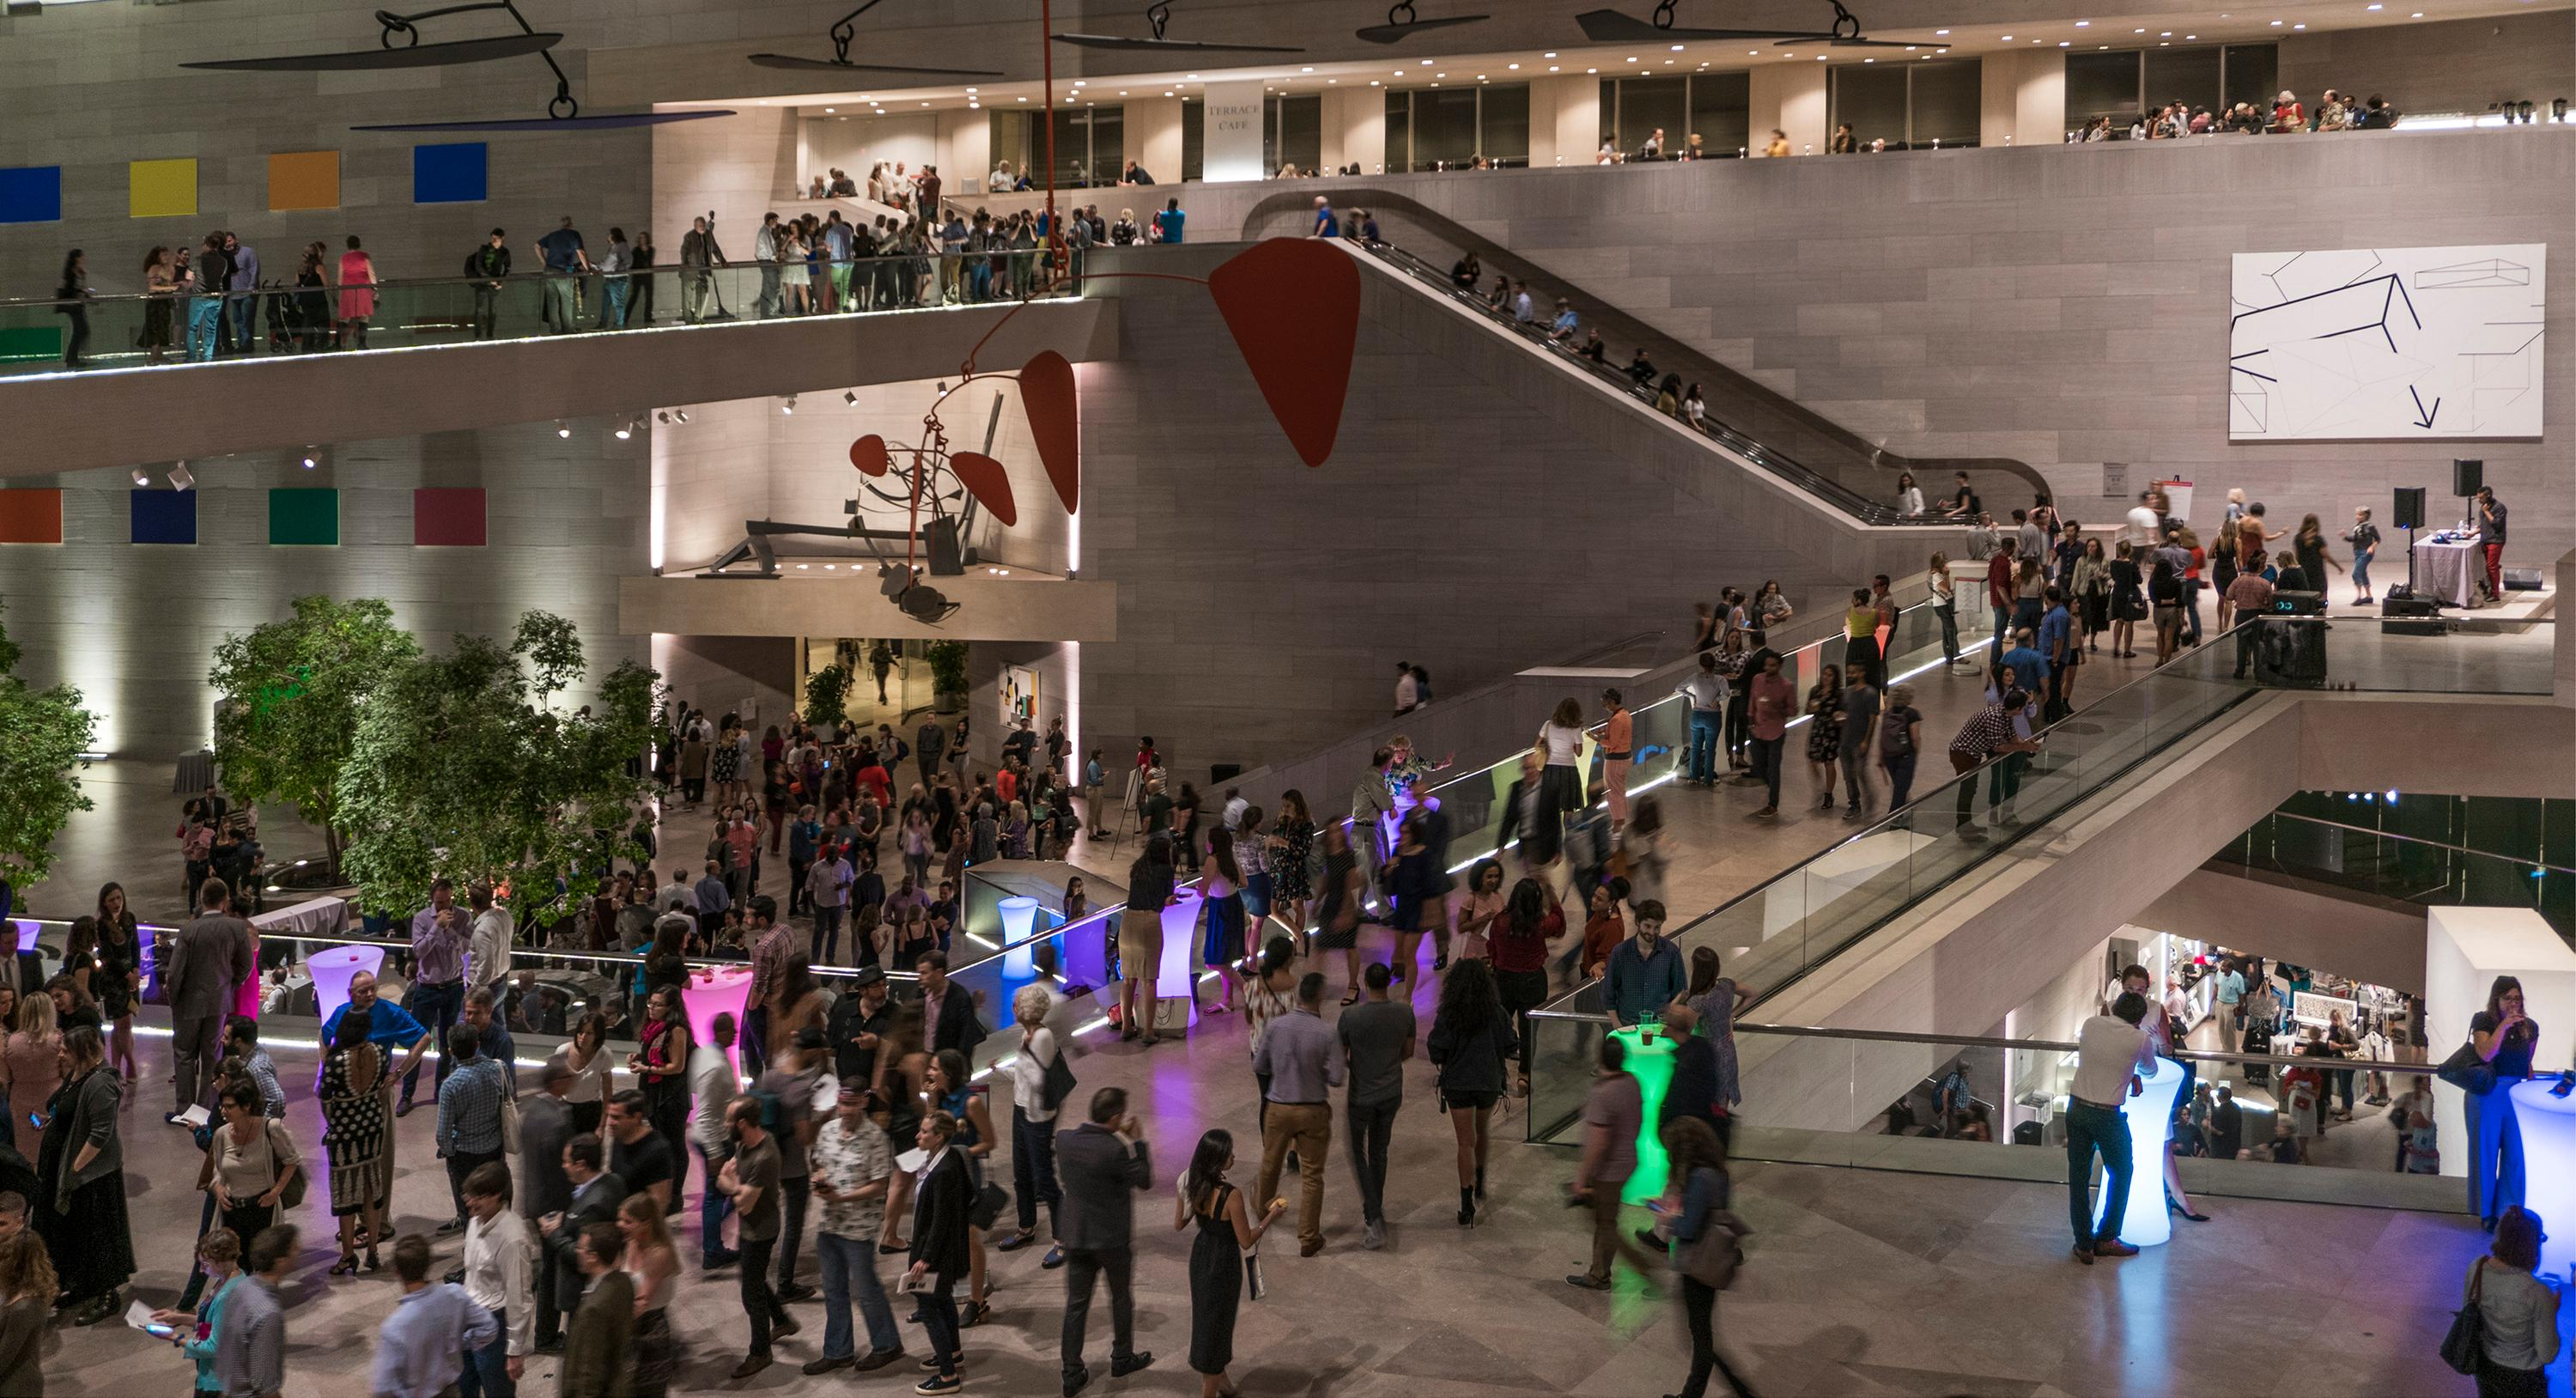 Celebrate the NGA East Building's 40th anniversary with Evenings at the Edge. (Image: Courtesy NGA)